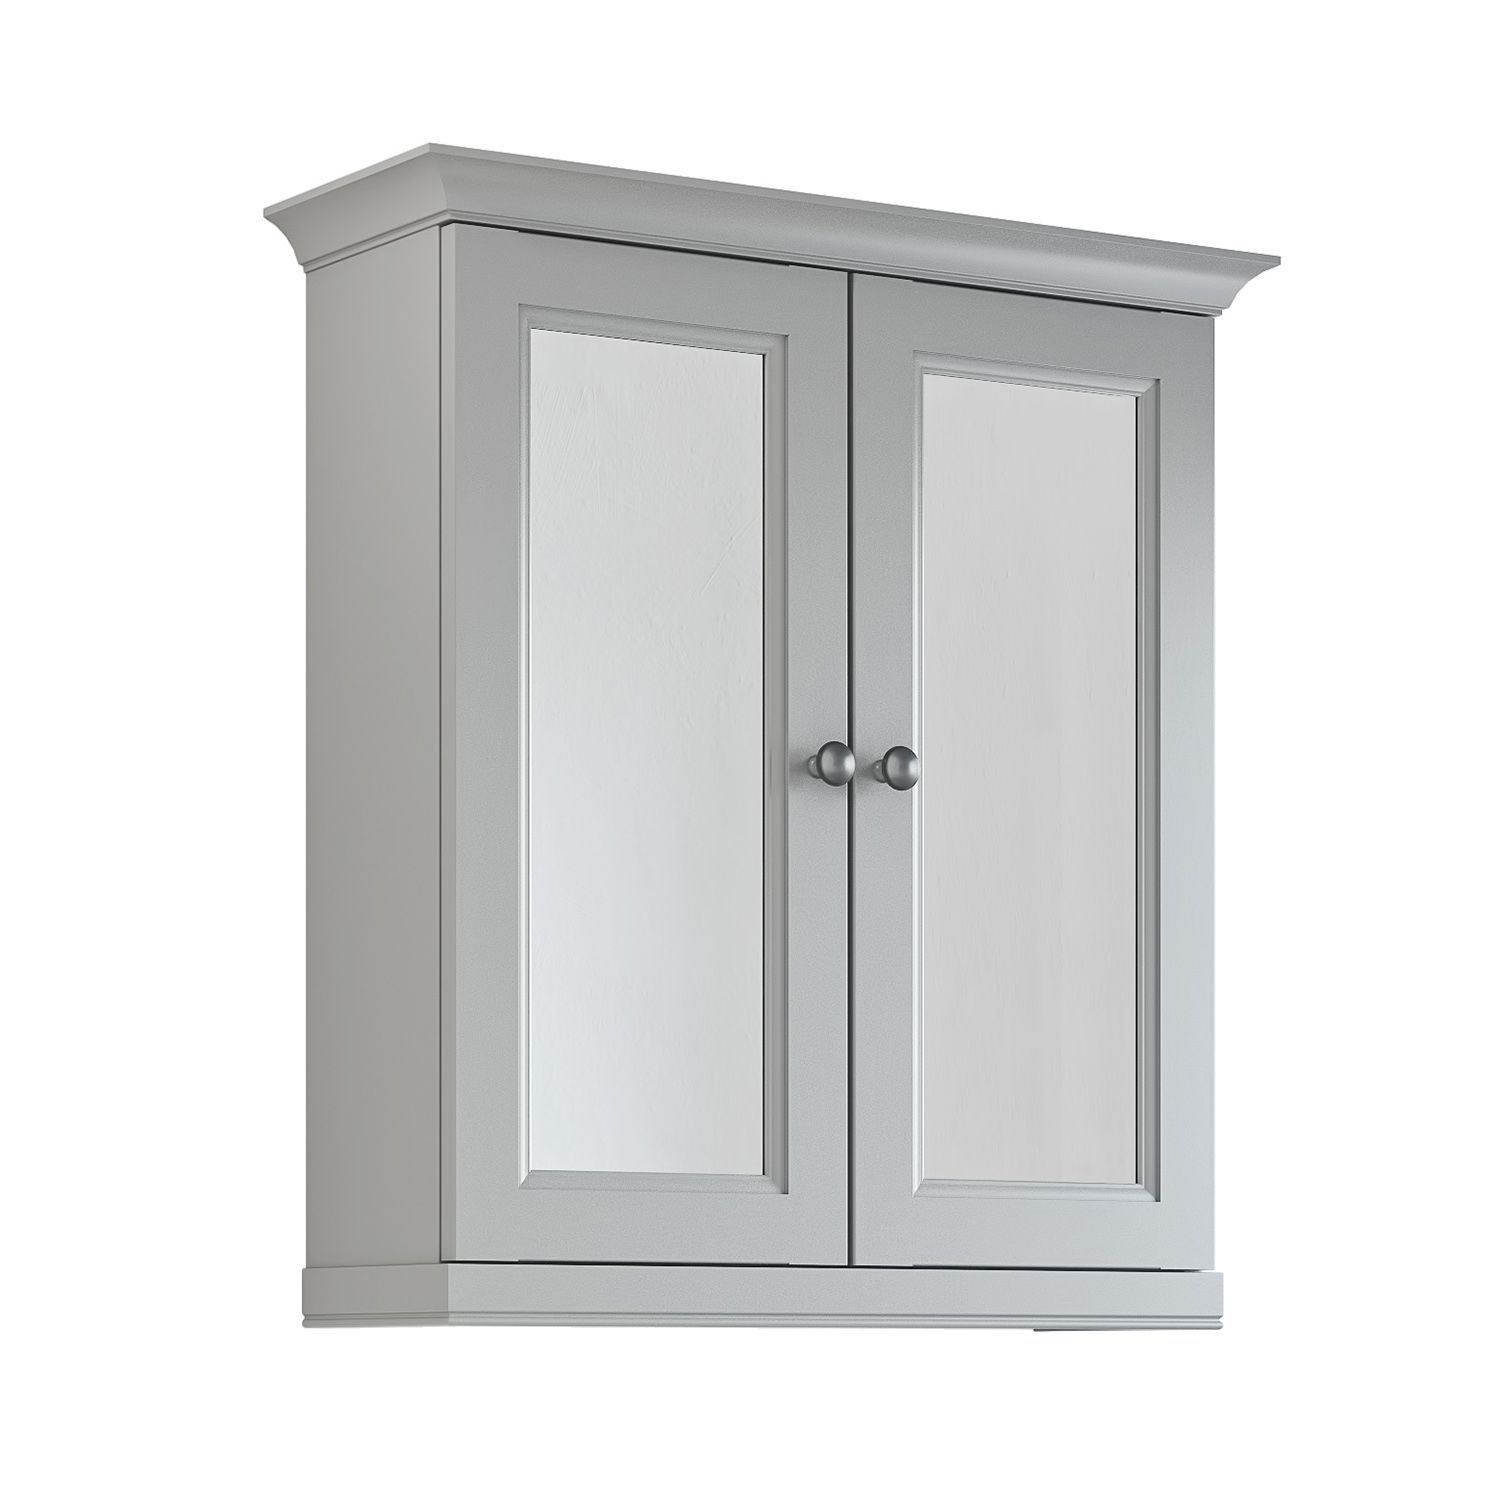 Bathroom Cabinets Uk Bq Cooke Lewis Chadleigh Double Door Light Grey Matt Mirror Cabinet